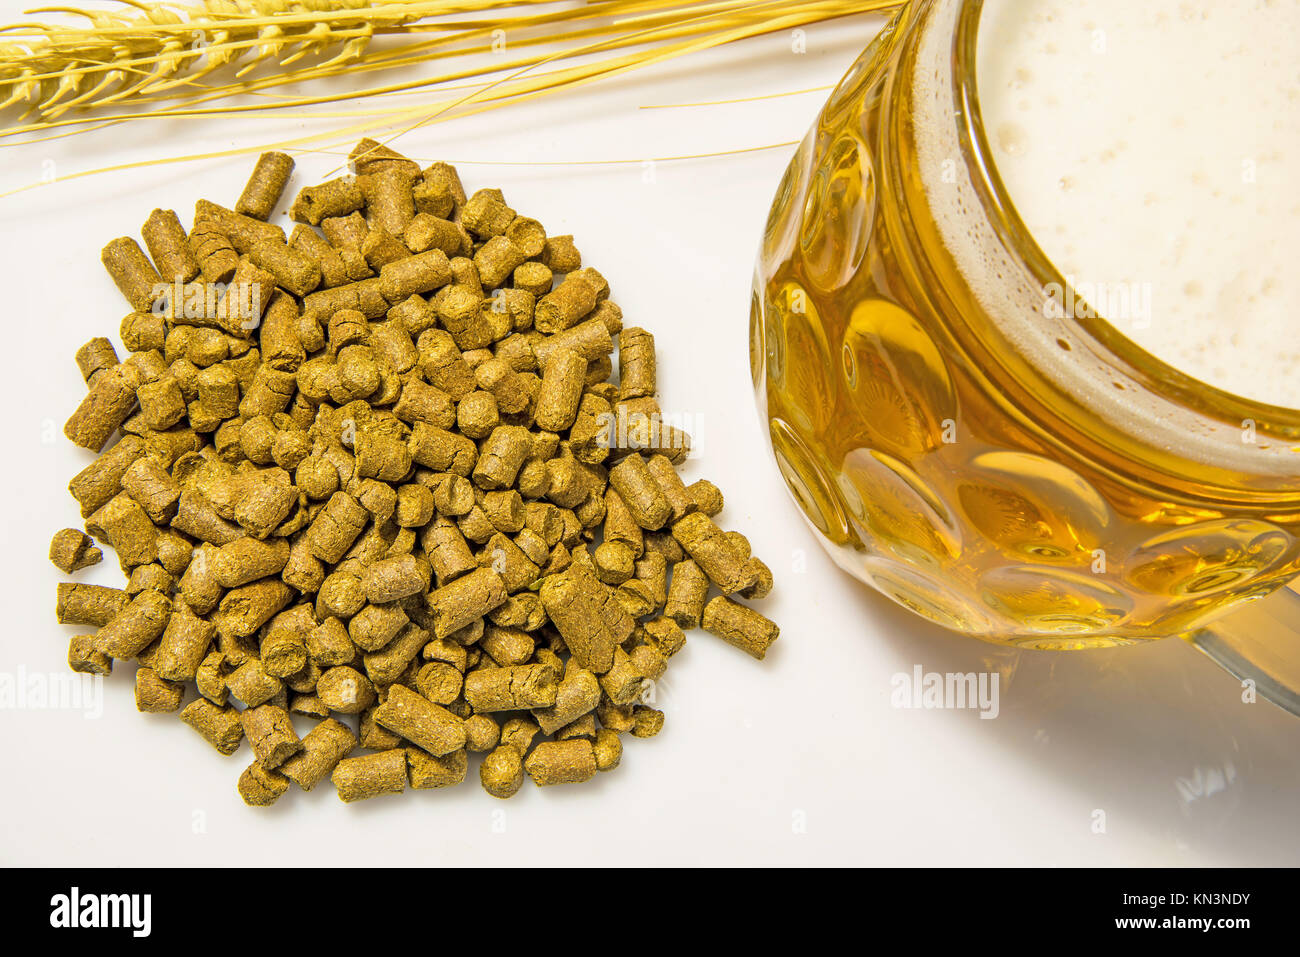 Hops pellets with beer glass. - Stock Image